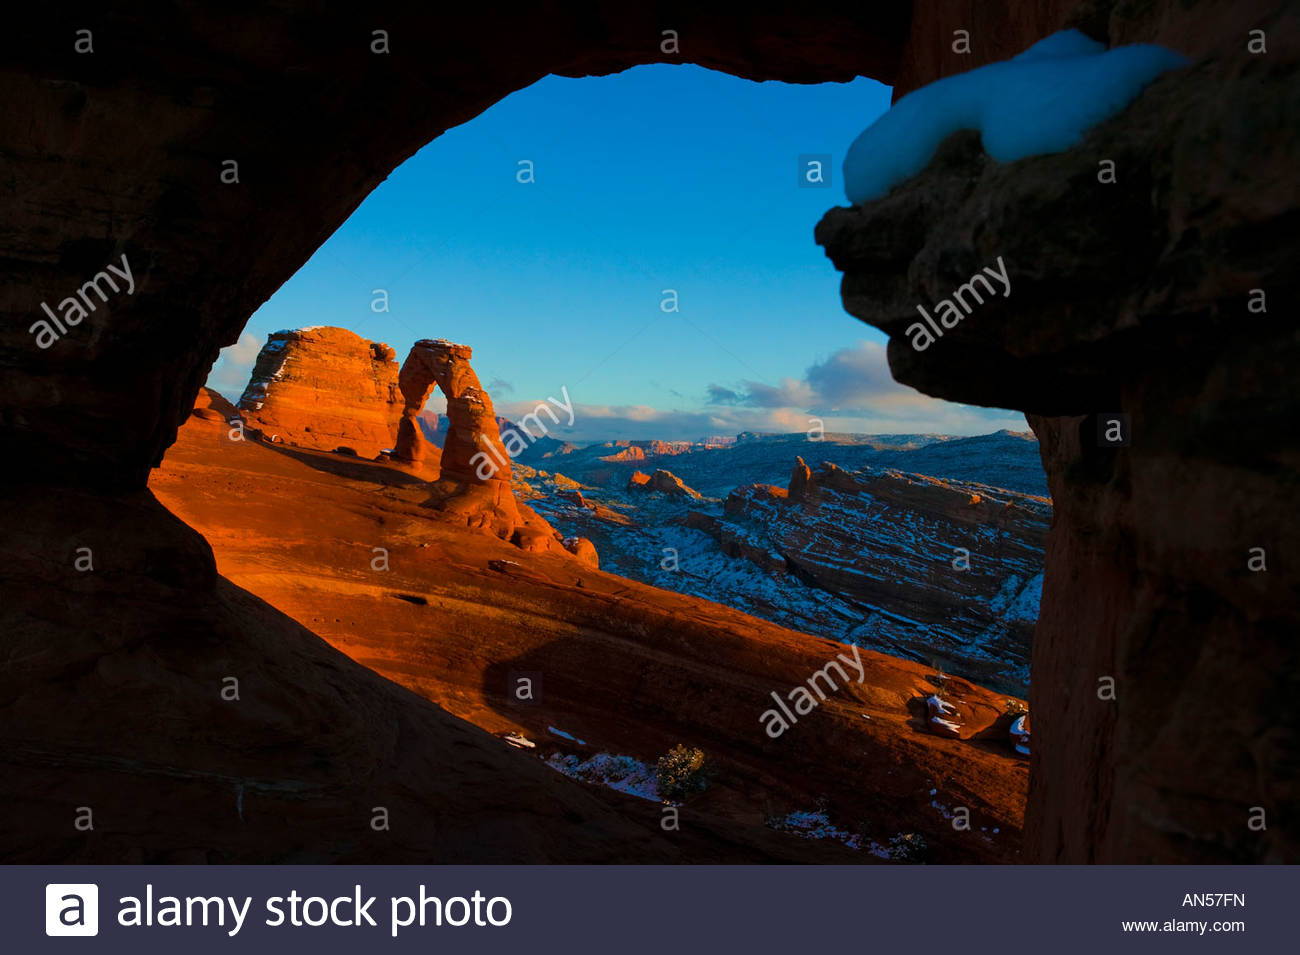 Delicate Arch, dusted by winter snow, is framed by a natural arch at sunset in Arches National Park near Moab, Utah. Stock Photo